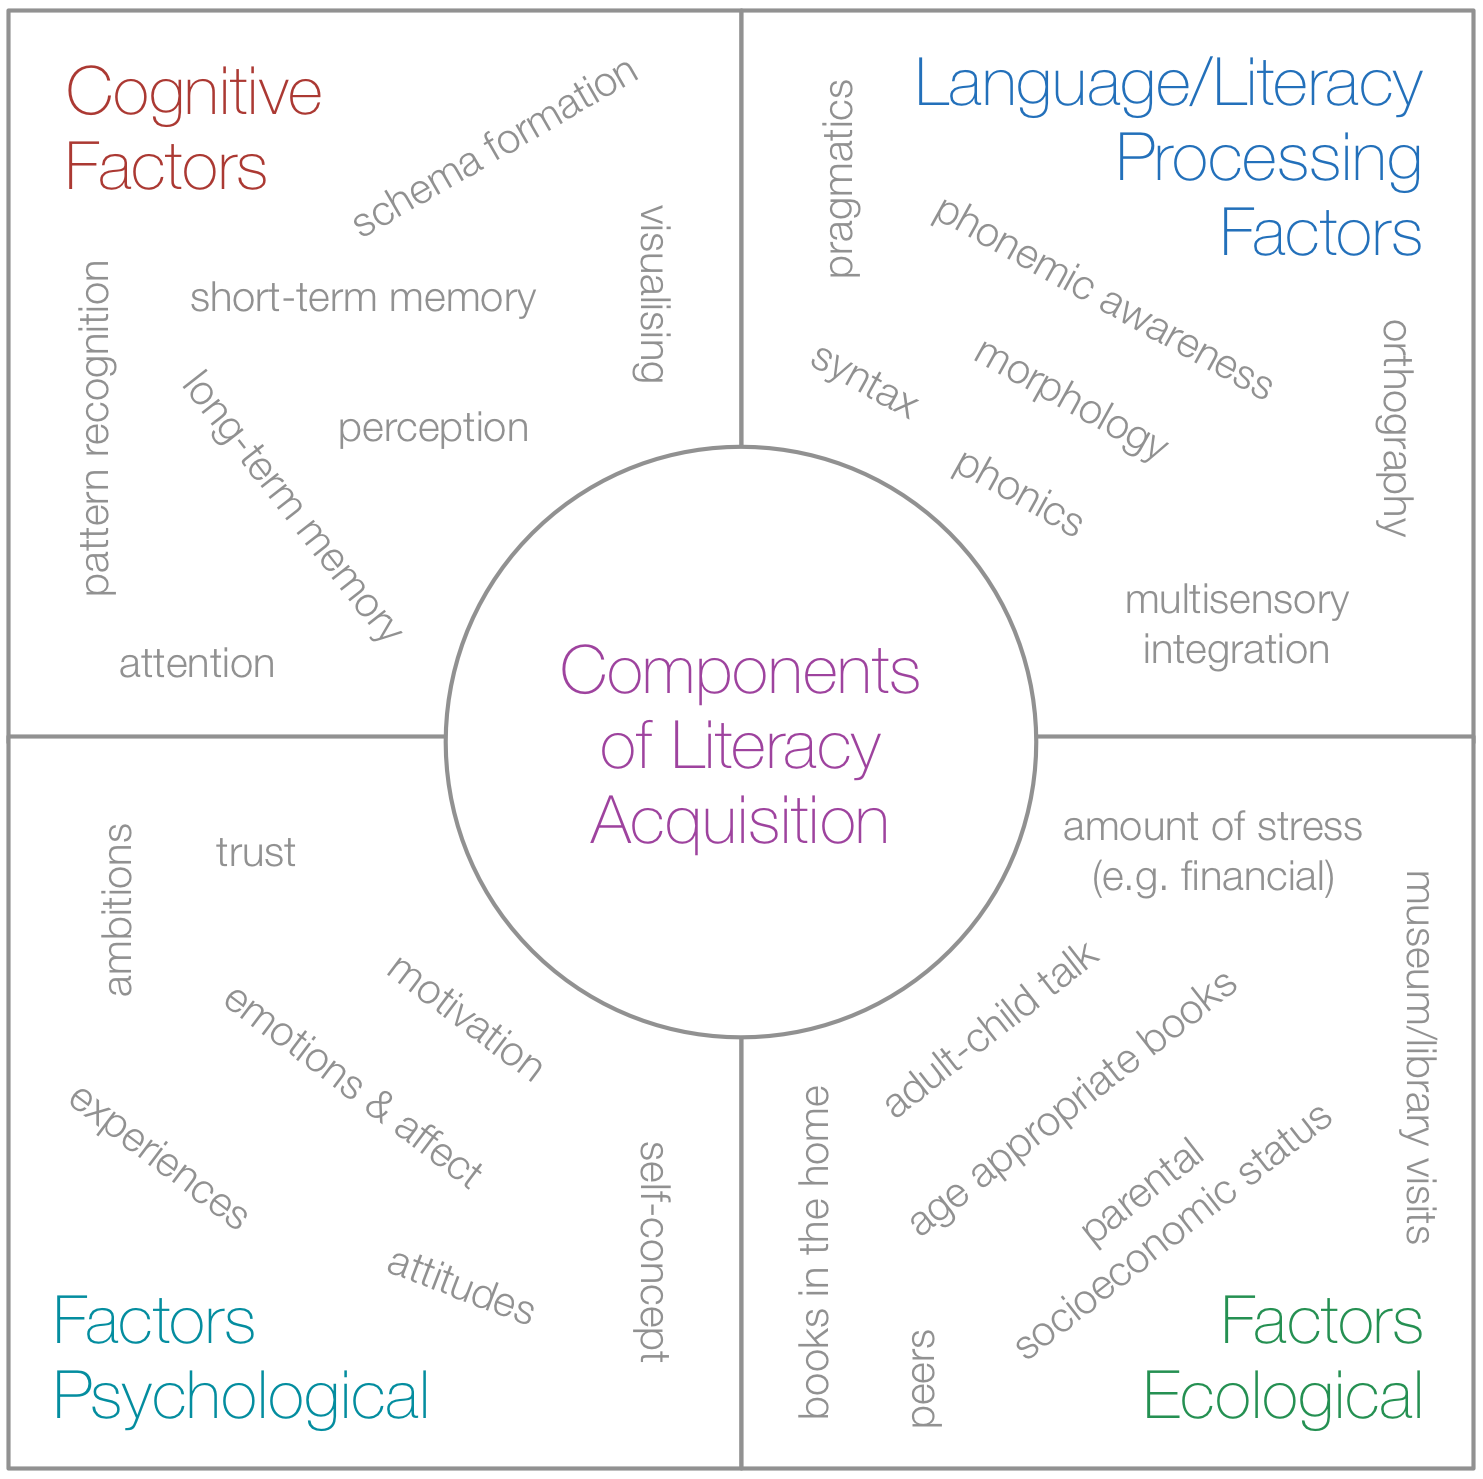 Component Model of Reading Development :  Chiu, M. M., McBride-Chang, C., & Lin, D. (2012). Ecological, psychological, and cognitive components of reading difficulties: testing the component model of reading in fourth graders across 38 countries.  Journal of Learning Disabilities  ,  45  (5), 391–405. doi:10.1177/0022219411431241